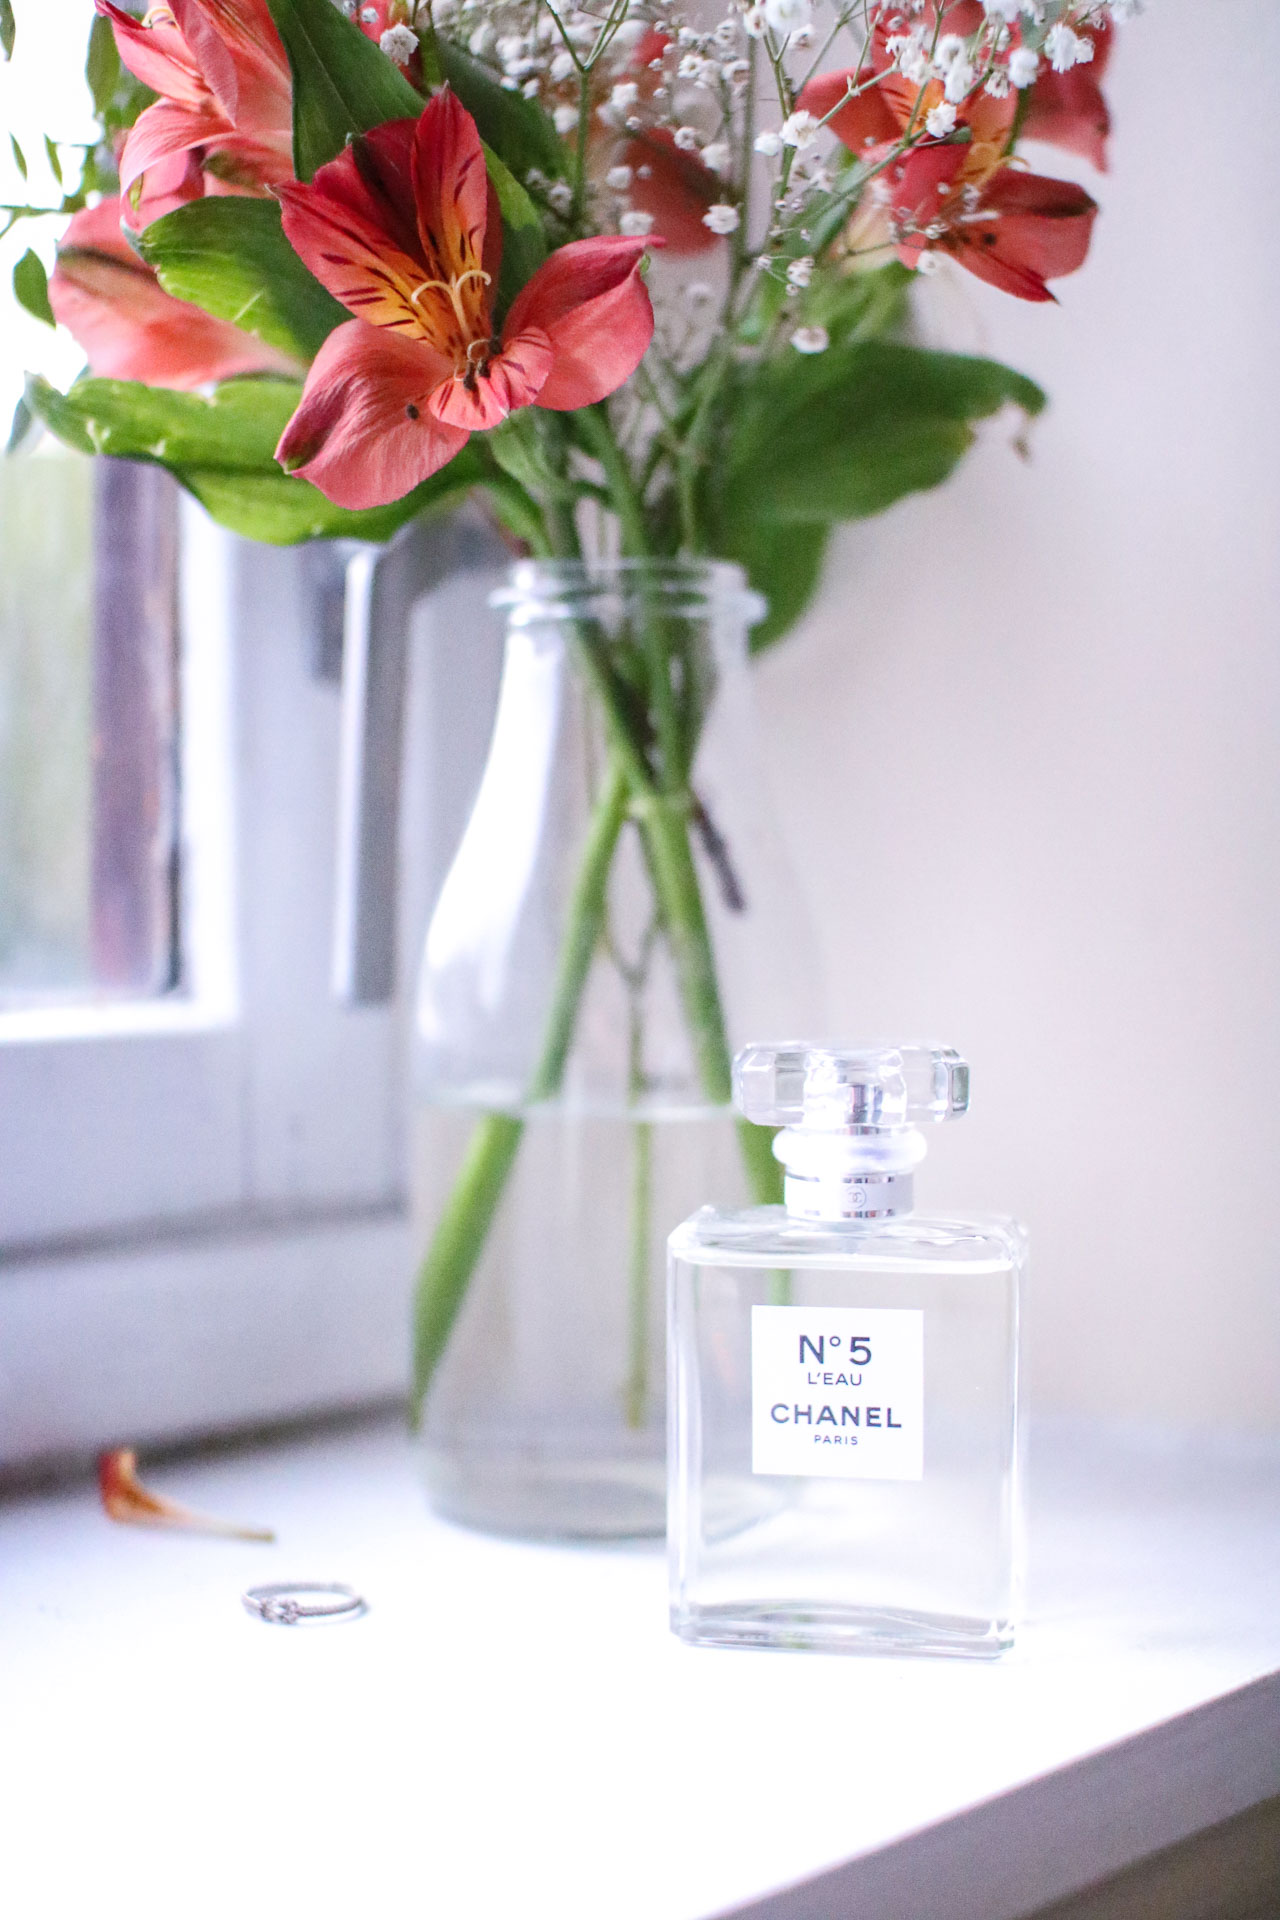 chanel no 5 l'eau review perfume 2